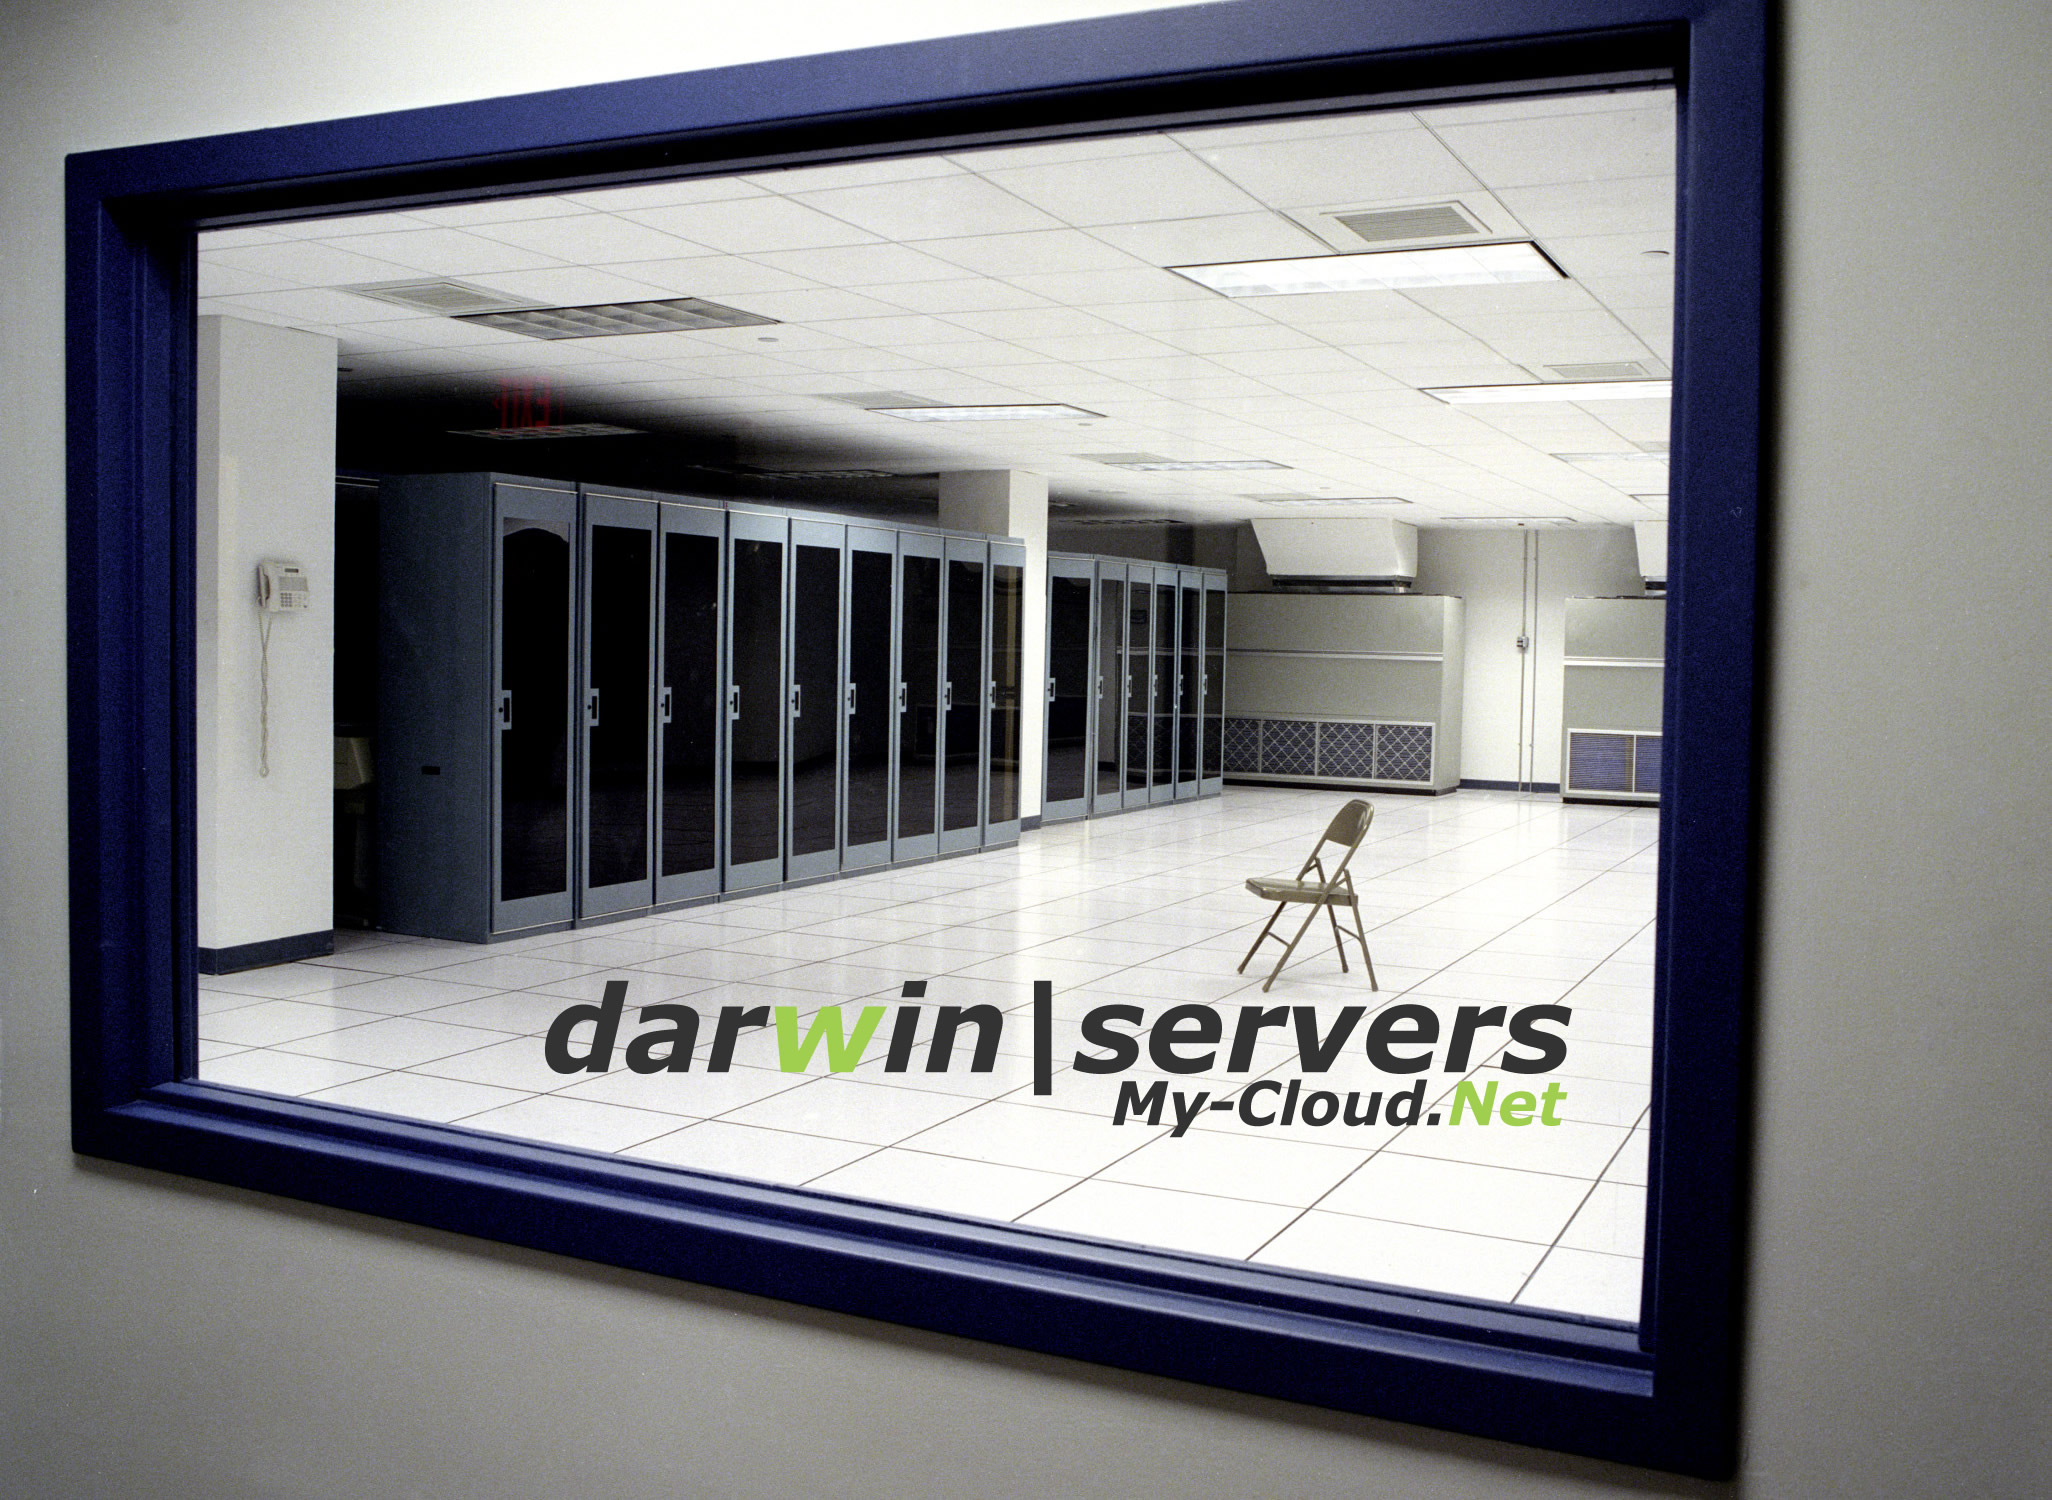 darwin servers data center image.